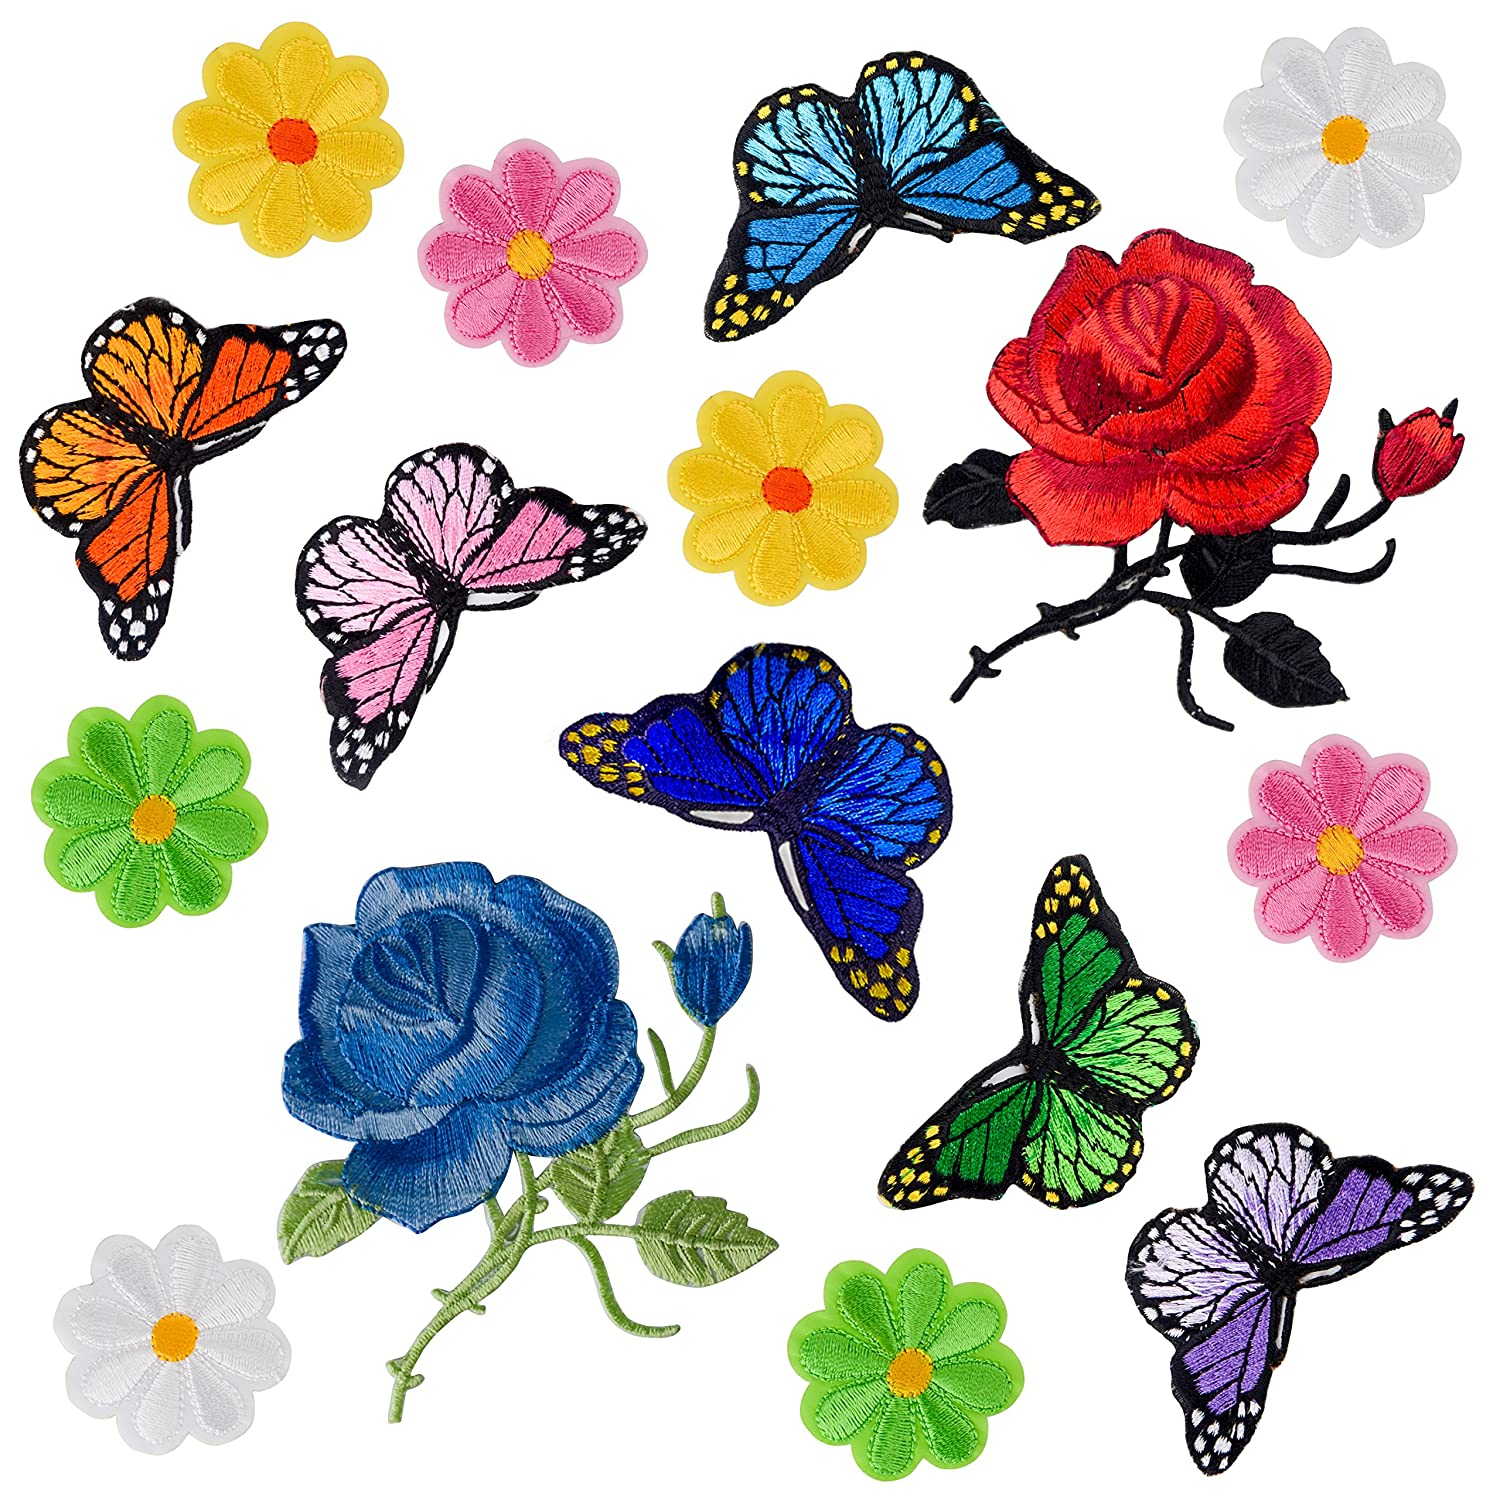 Coopay 16 Pieces Flowers Butterfly Iron on Patches Embroidery Applique Patches for Arts Crafts DIY Decor, Jeans, Jackets, Clothing, Bags 4337017958